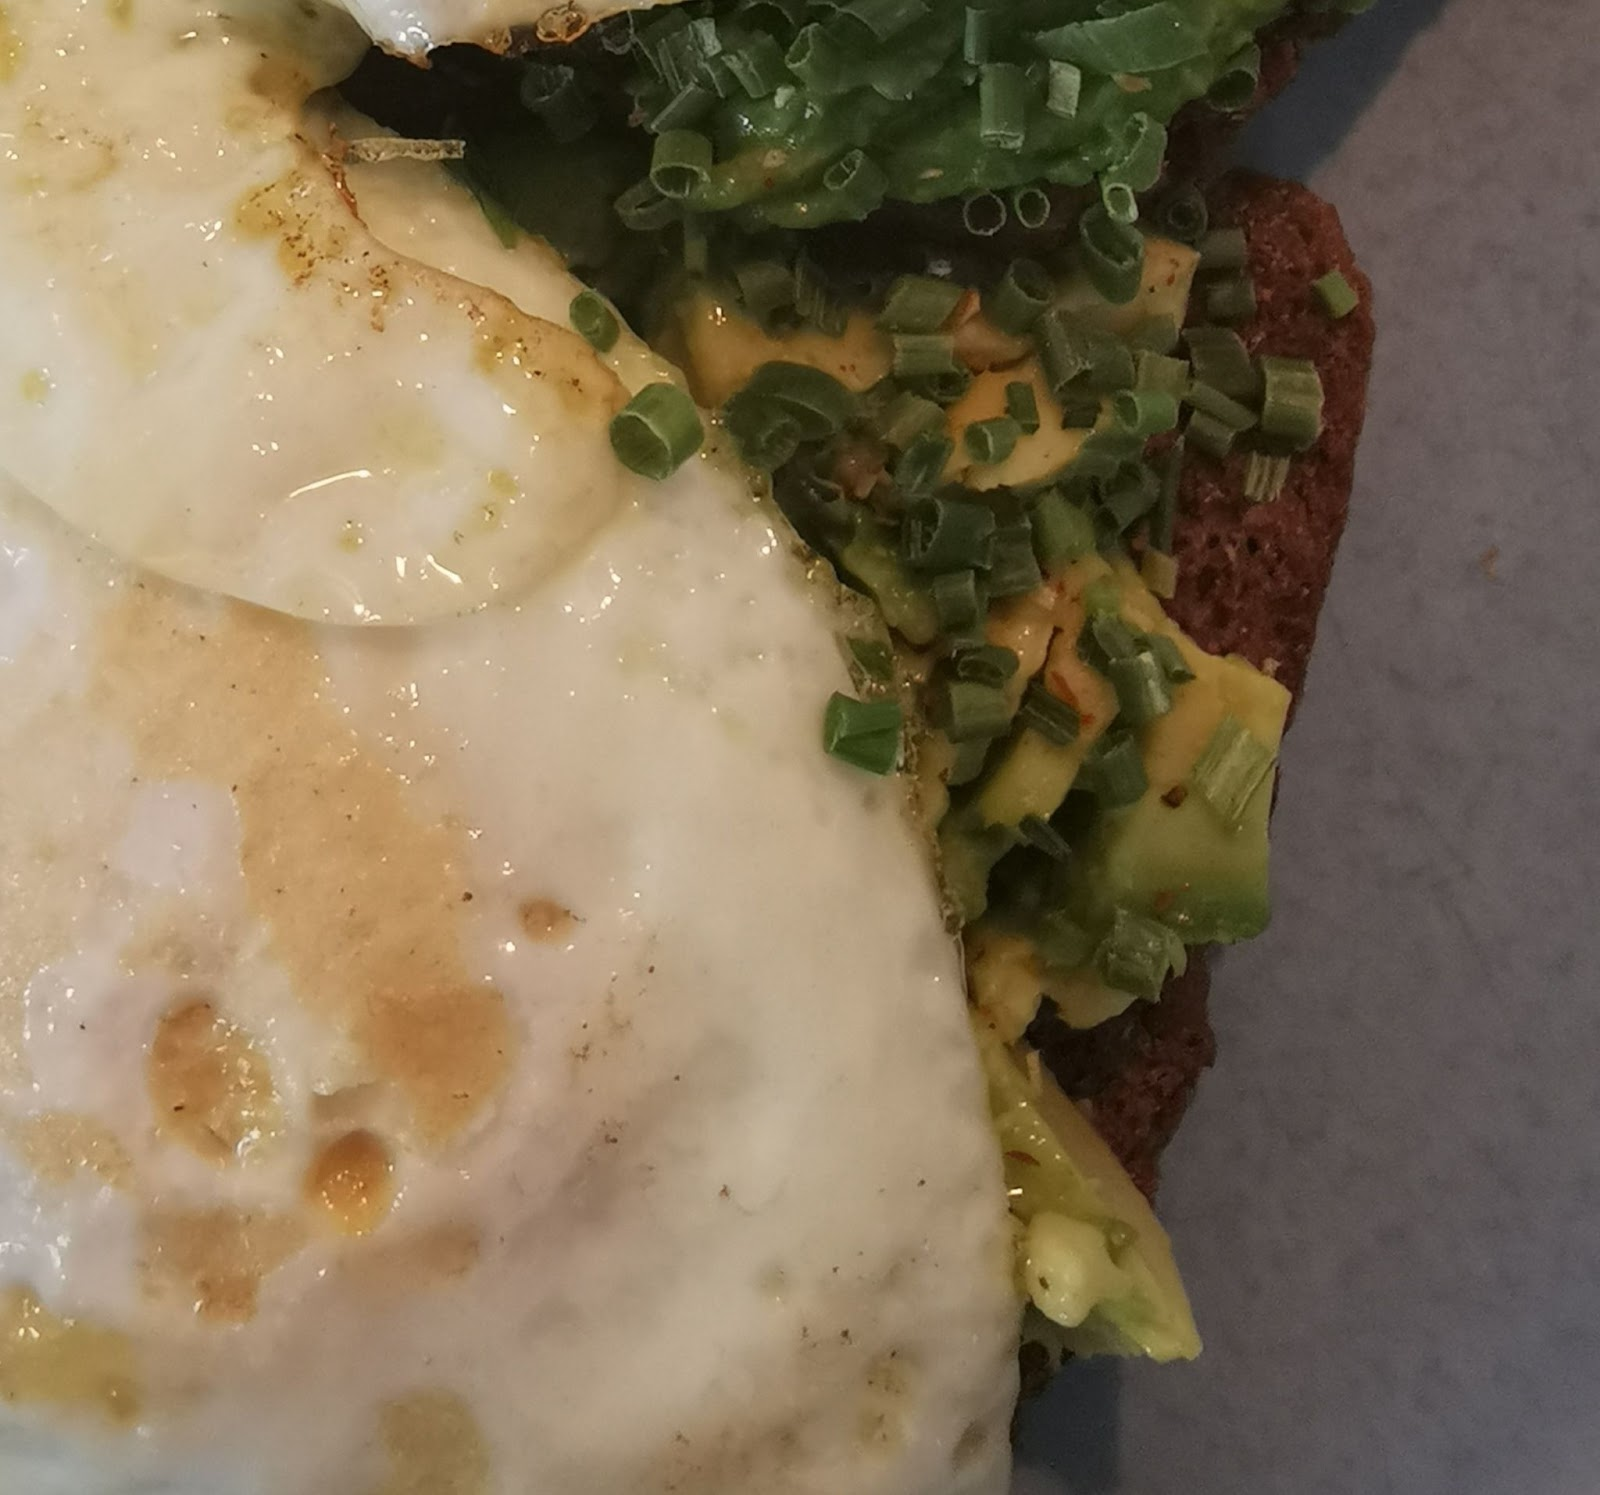 a fried egg sitting on top of mashed avocado on rye toast, sprinkled with chives